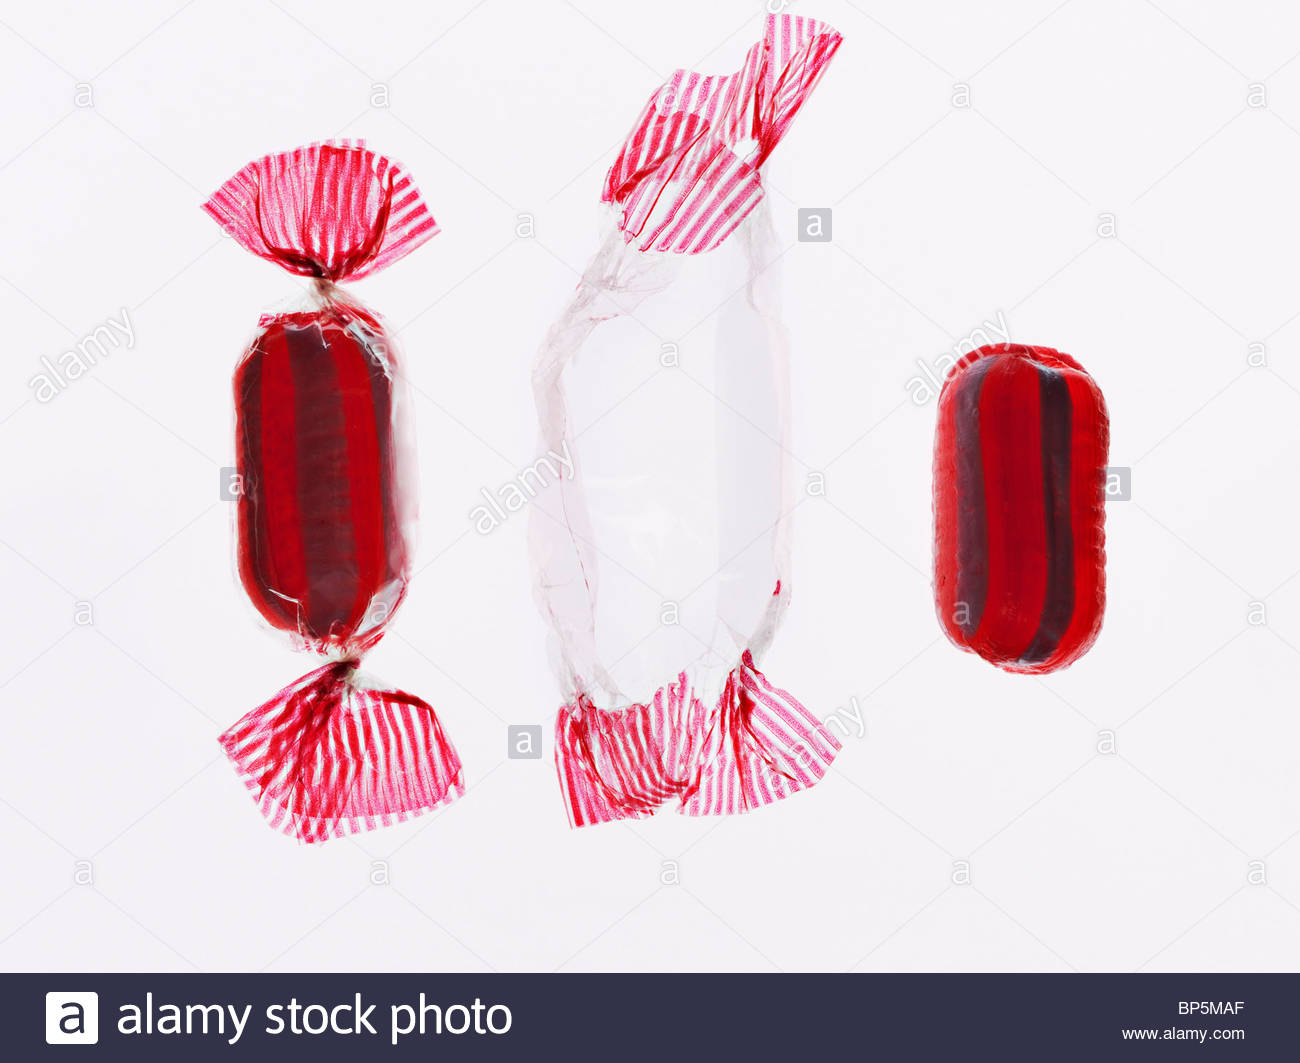 Wrapped and unwrapped hard candy - Stock Image